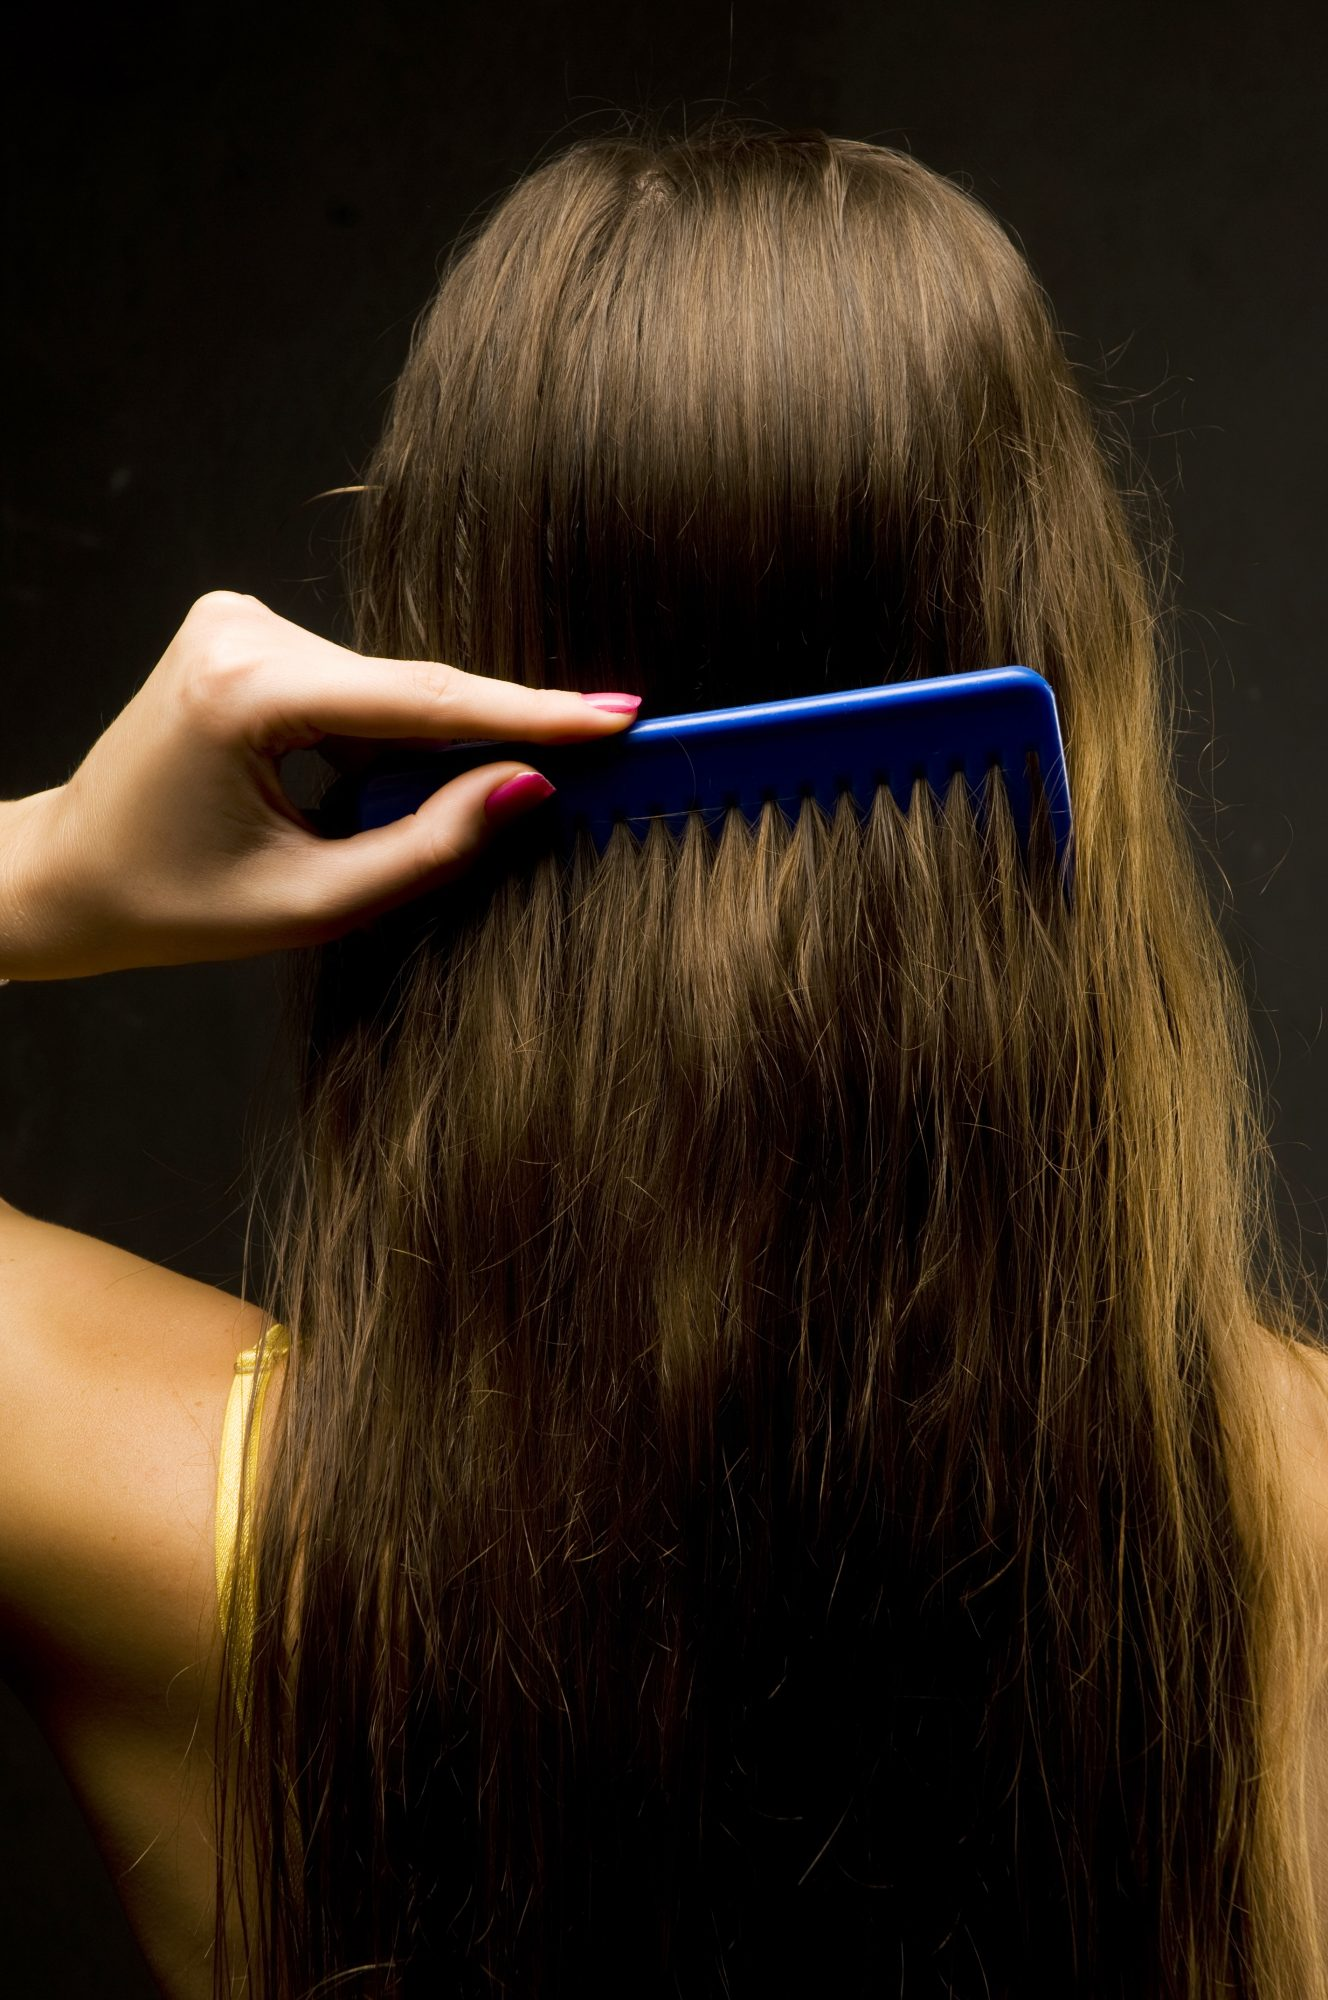 9 Solutions for Common Hair Emergencies 9 Solutions for Common Hair Emergencies new foto